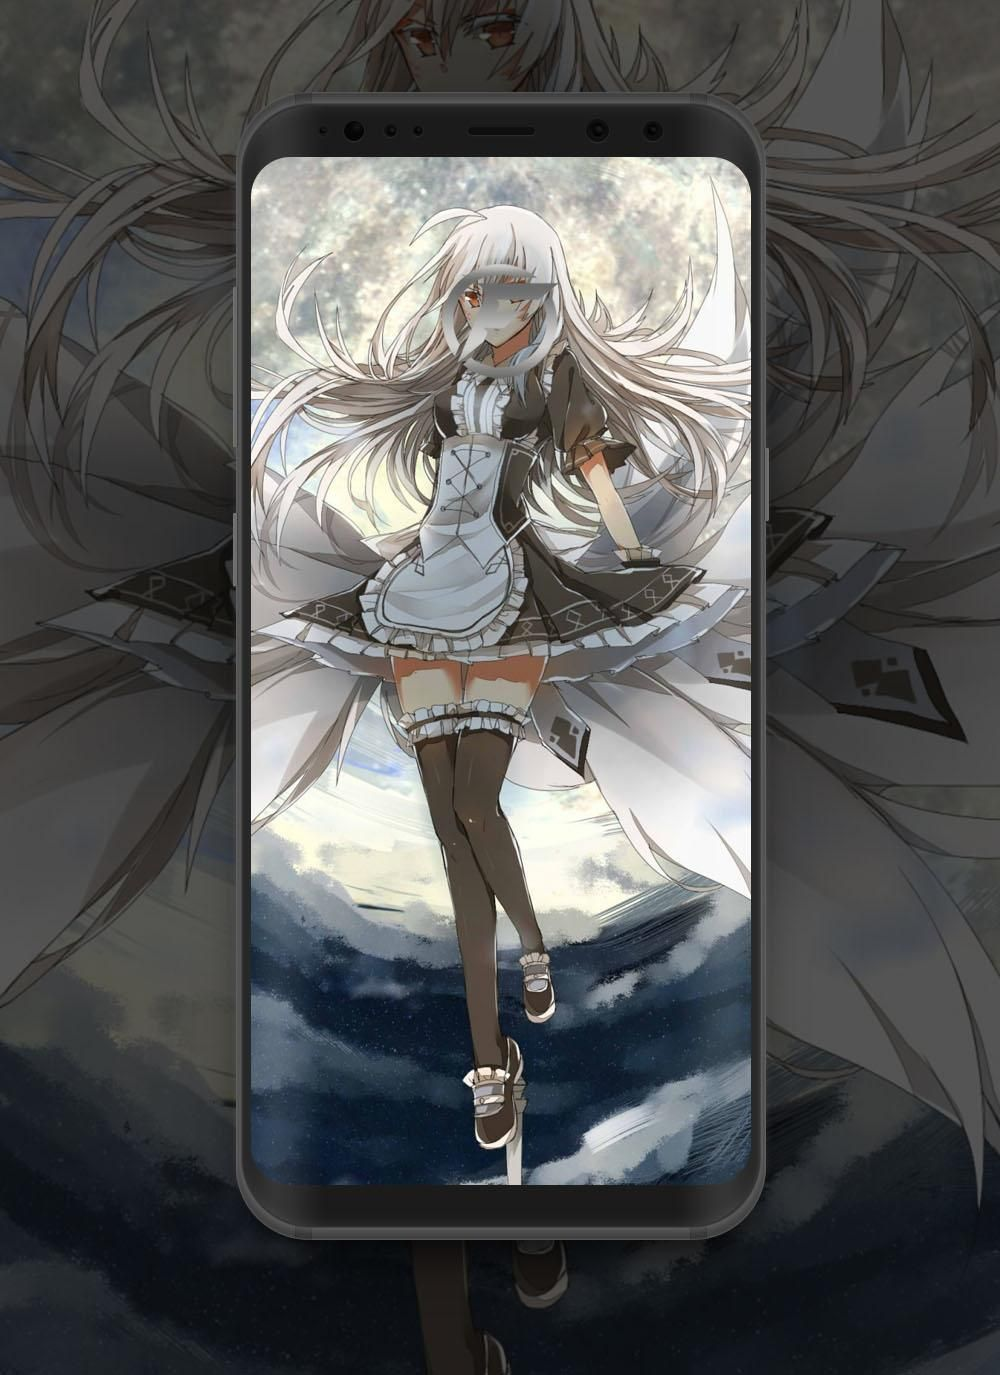 Elsword Anime Wallpaper Android Elsword Wallpapers Hd For Android